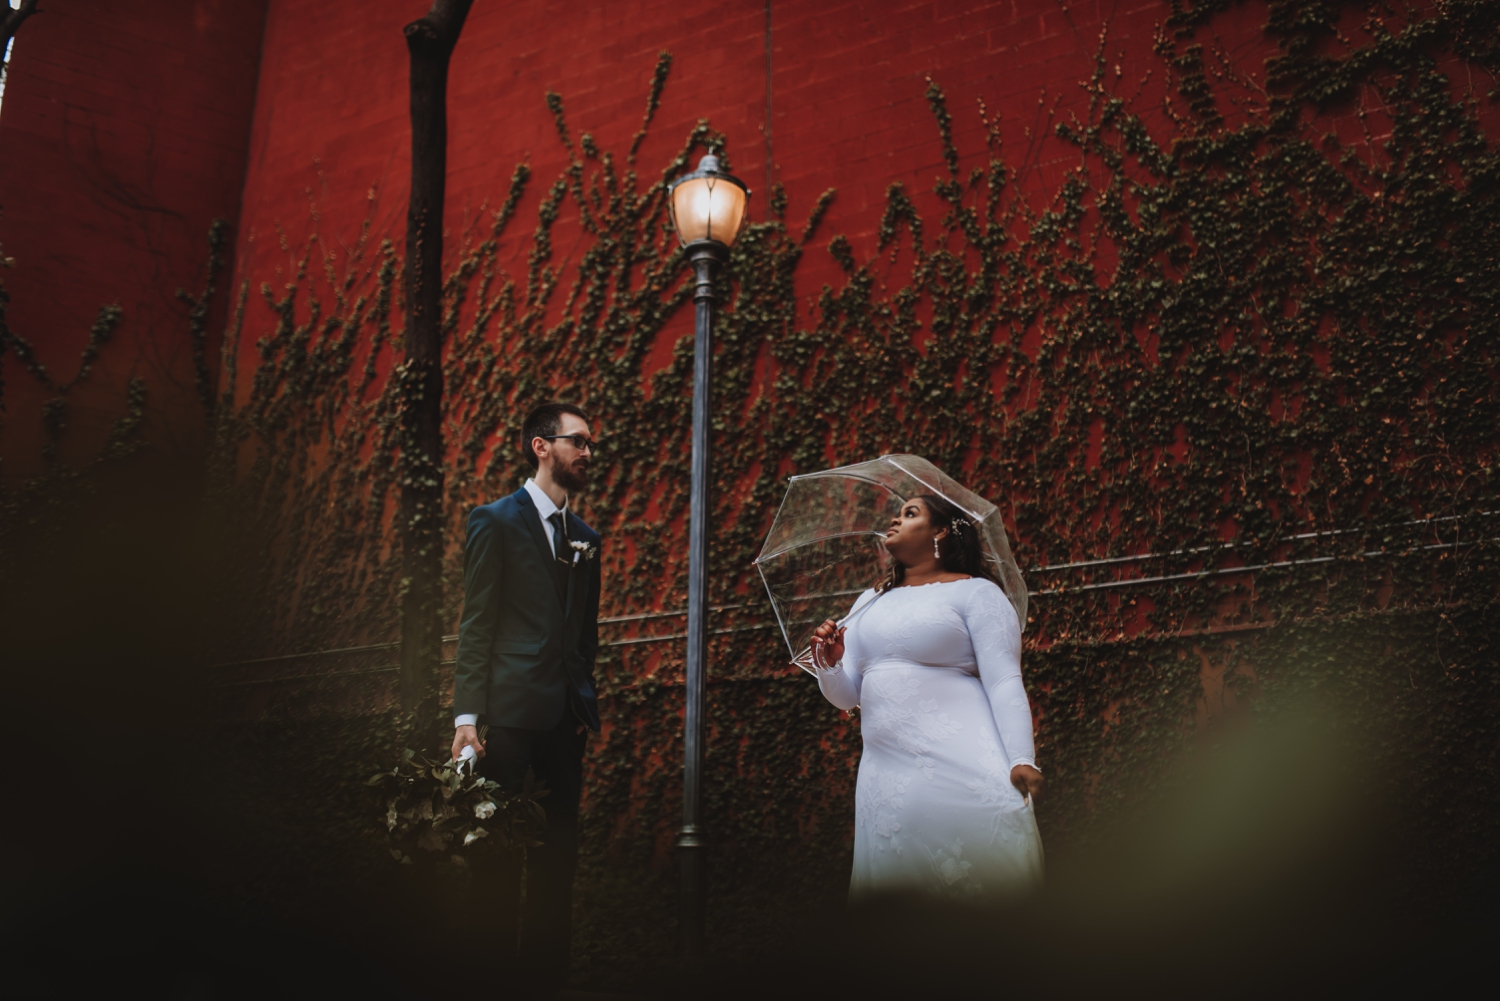 Chicago Elopement photographer - The Adamkovi, bride and groom red wall, ivy wall, umbrella photo